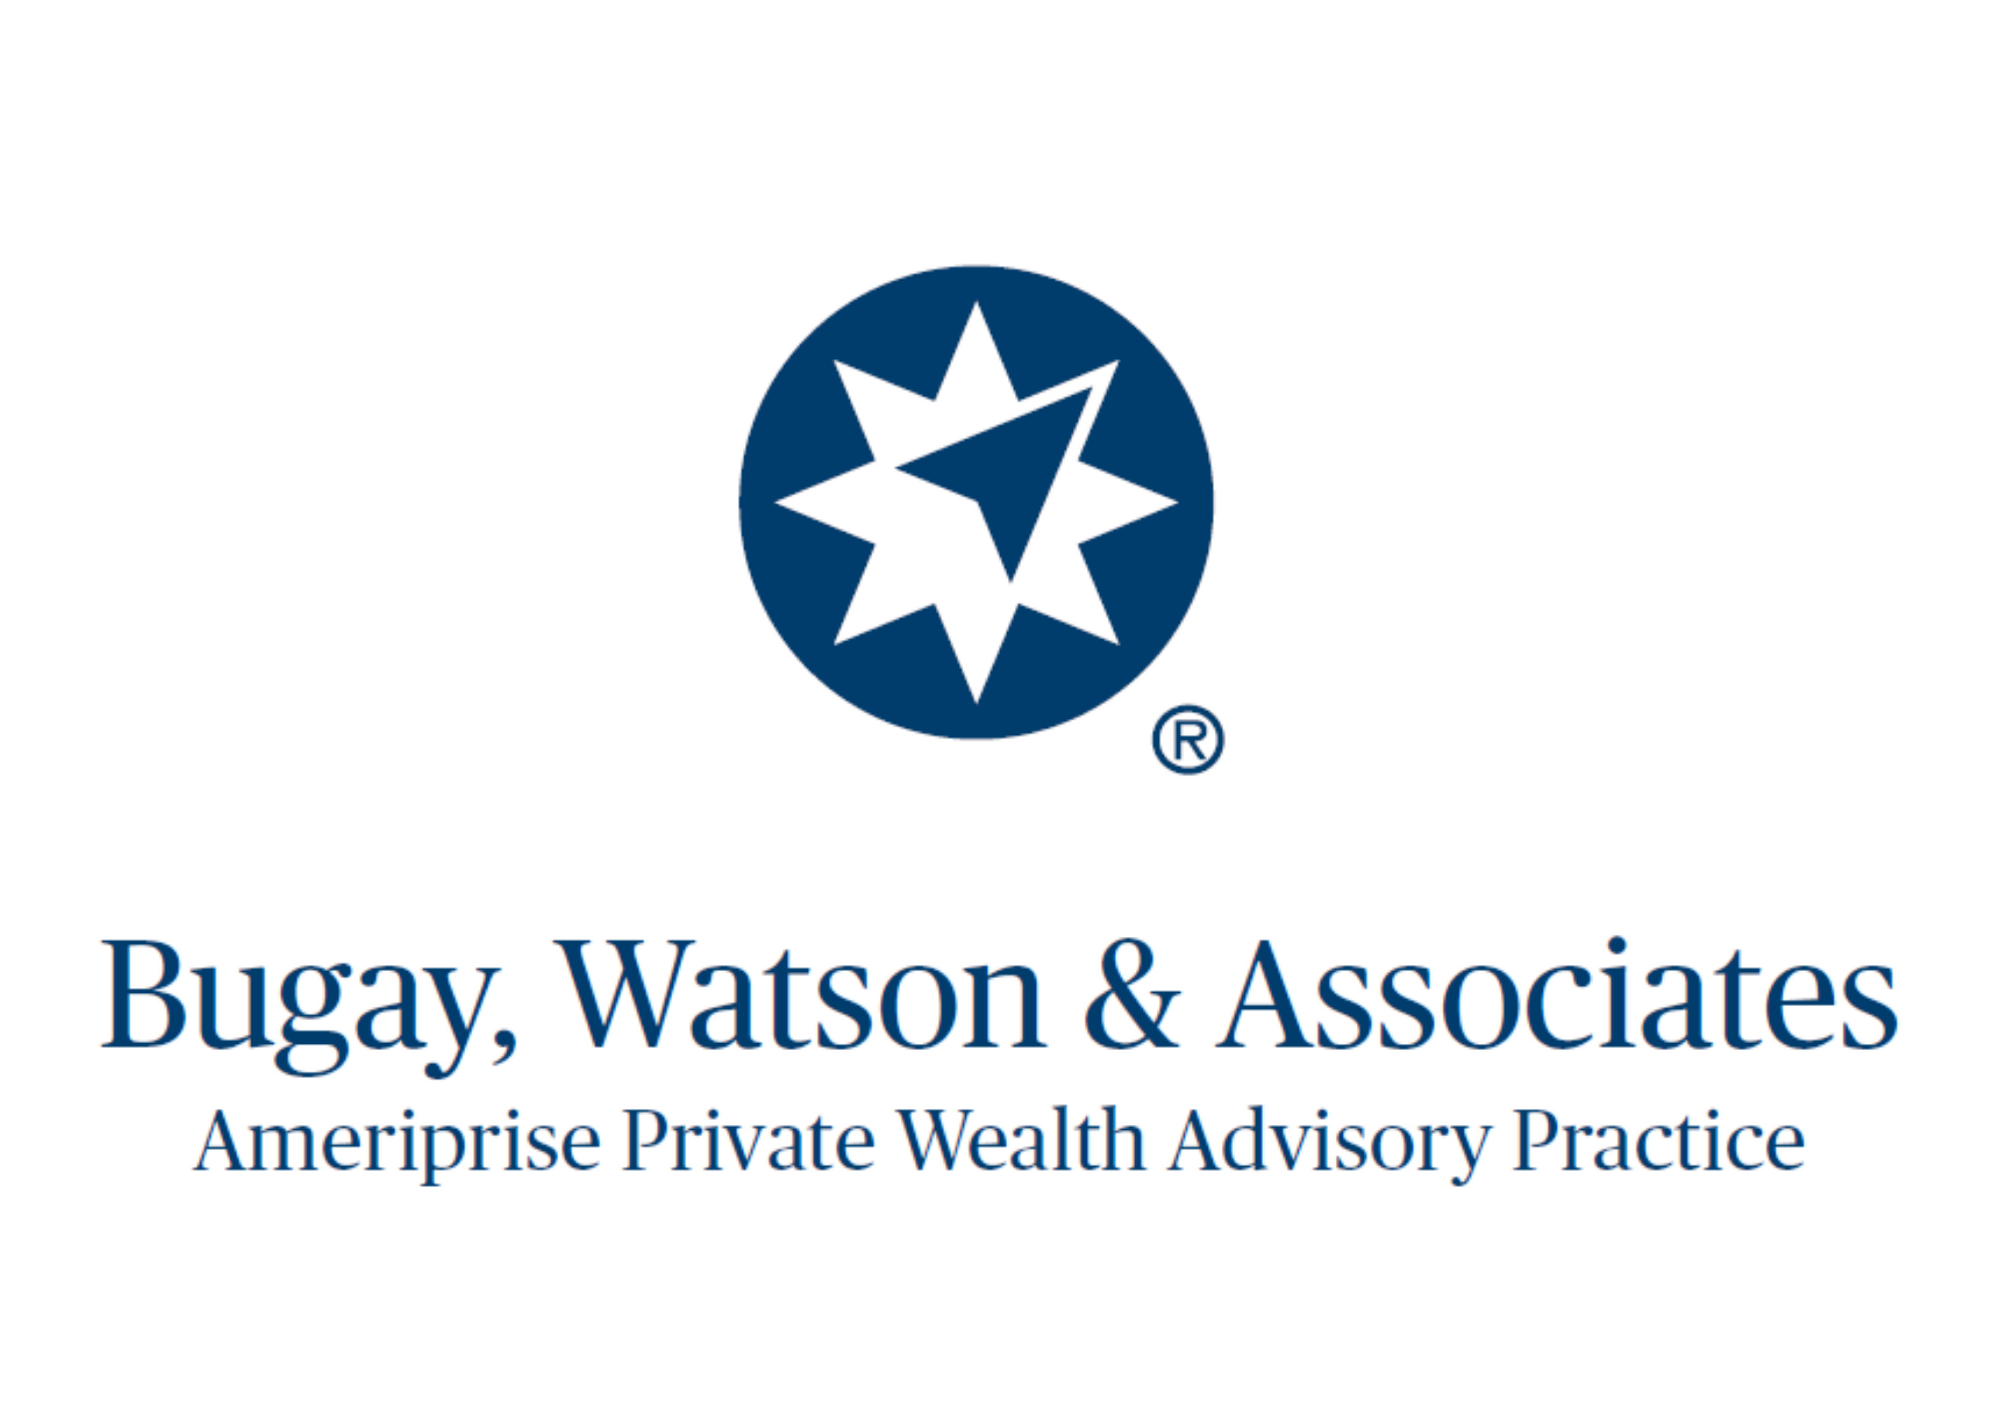 Bugay, Watson & Associates, a private wealth advisory practice of Ameriprise Financial Services, Inc (Carbon)